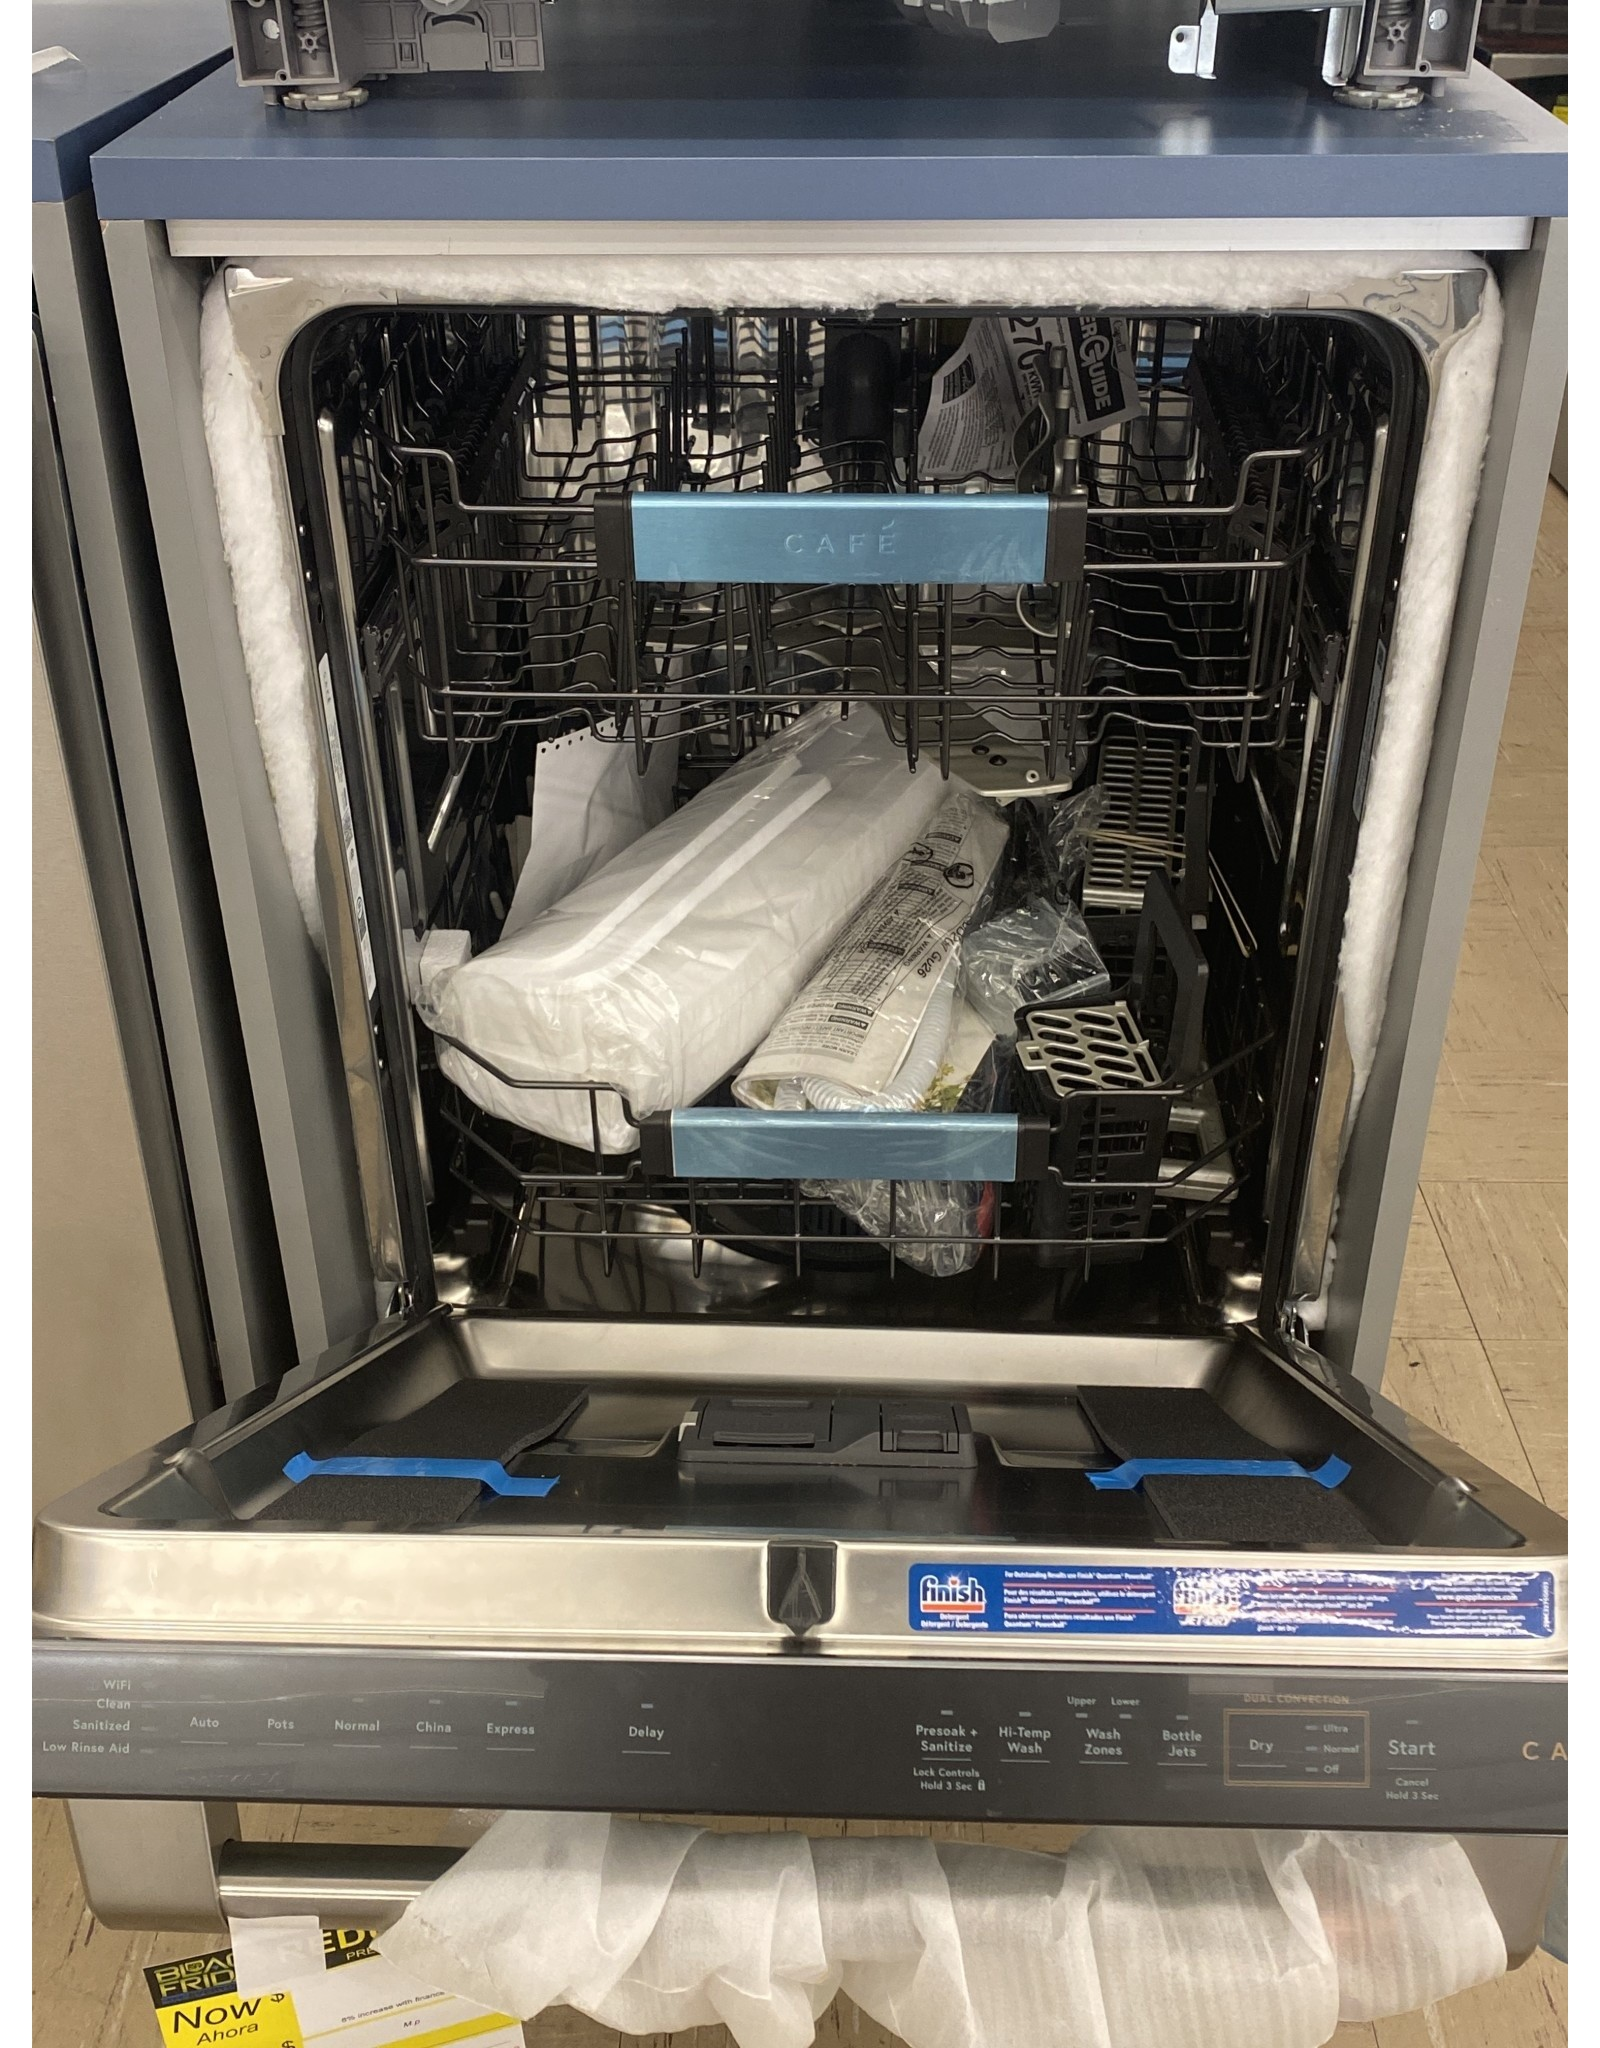 GE Cafe' CDT855P2NS1 AS IS Smart Top Control Tall Tub Dishwasher in Stainless Steel with Stainless Steel Tub, 42 dBA